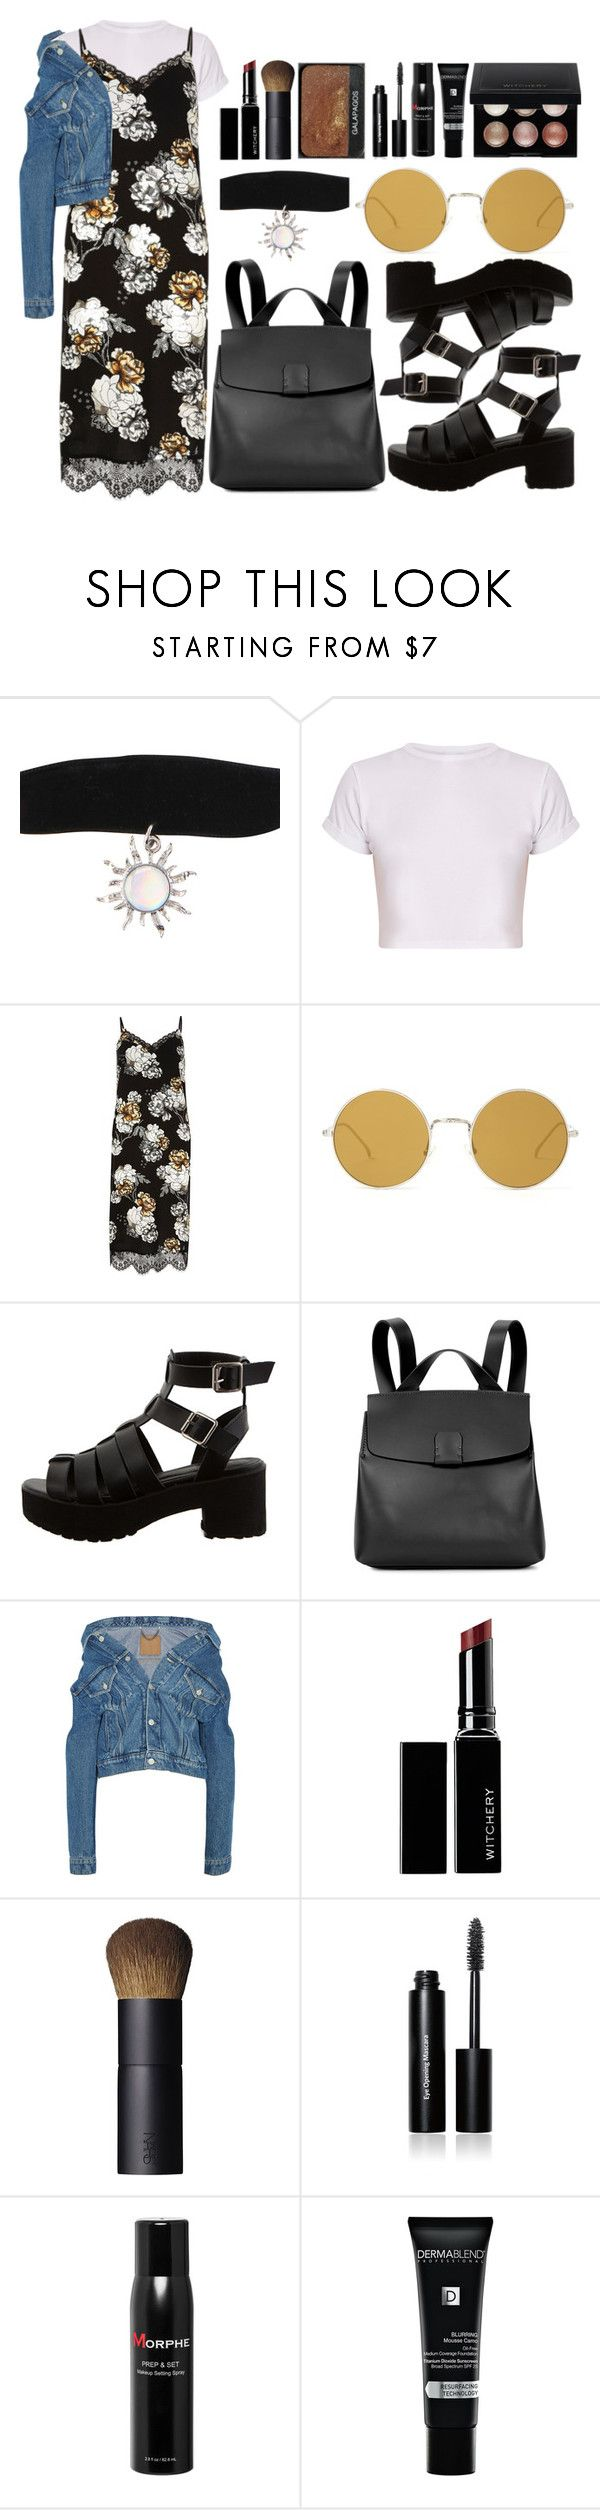 """""""90's"""" by thegoodmansdaughter ❤ liked on Polyvore featuring Hot Topic, River Island, Illesteva, Nico Giani, Balenciaga, Witchery, NARS Cosmetics, Bobbi Brown Cosmetics, Morphe and Dermablend"""